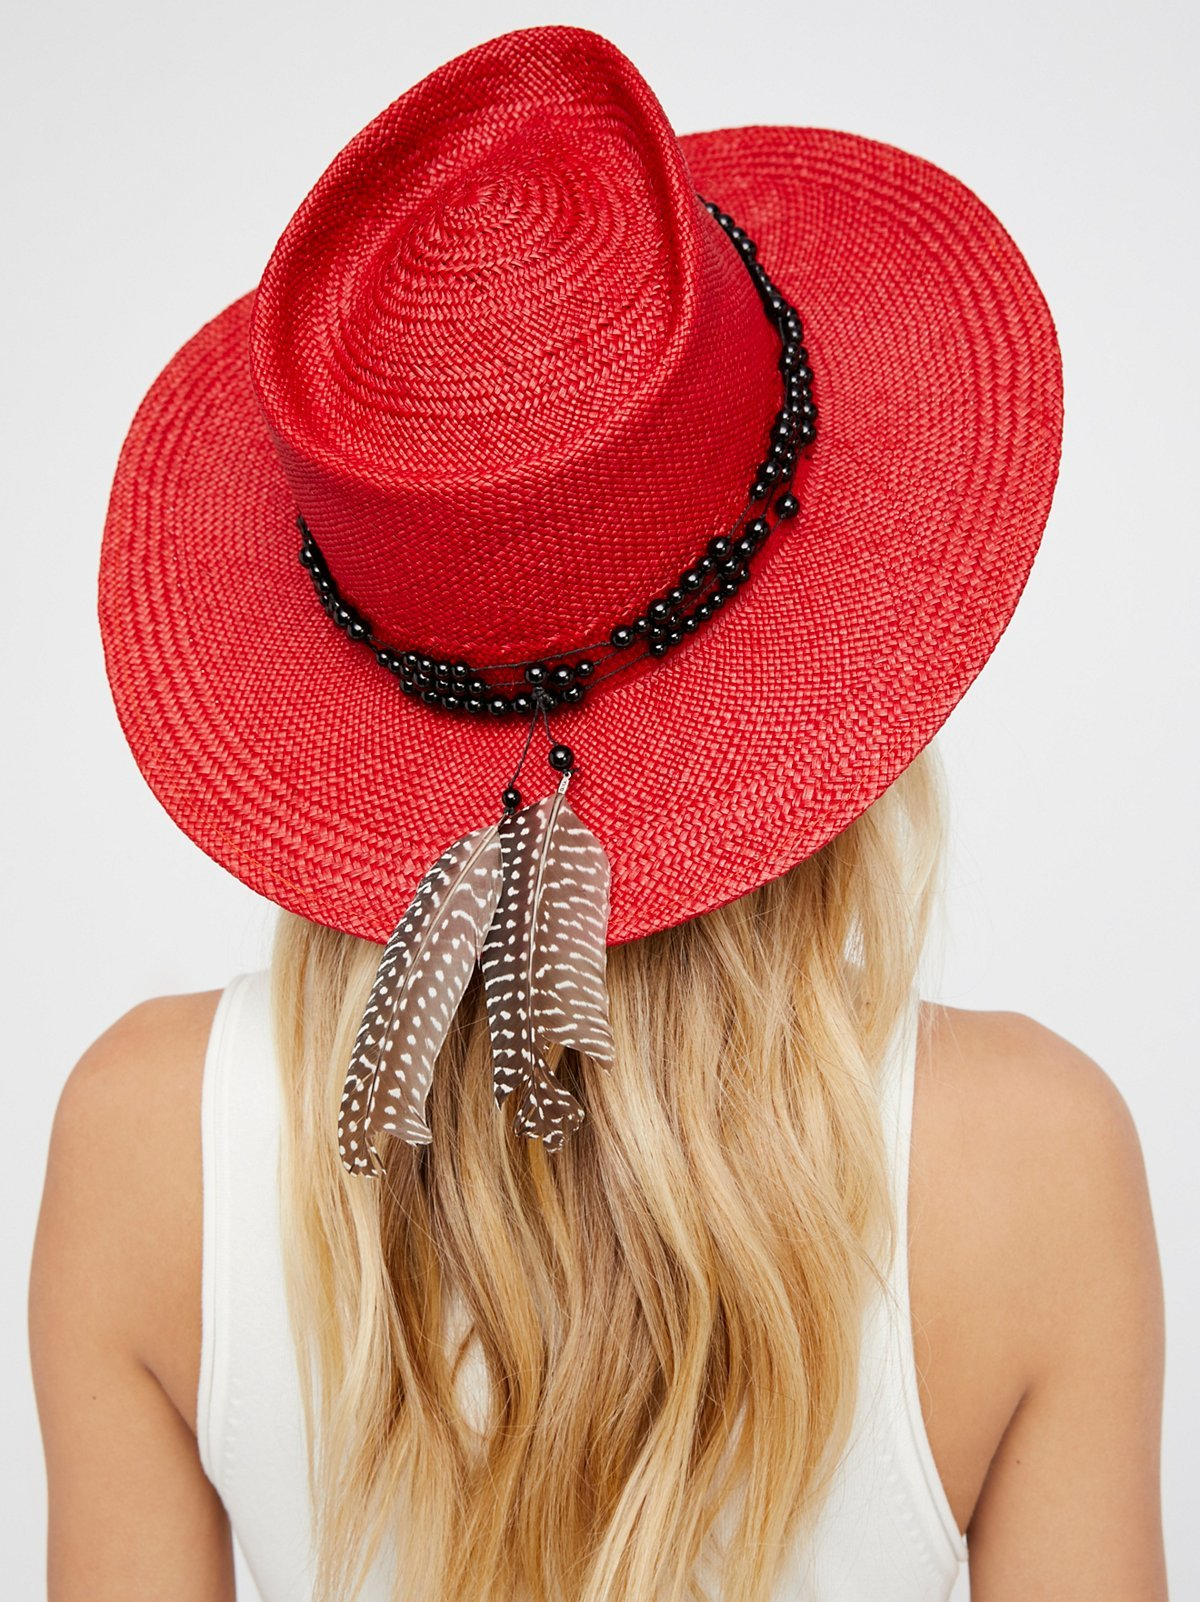 How To Find The Perfect Straw Hat For Your Summer Style Houstonia Winter Wh 94